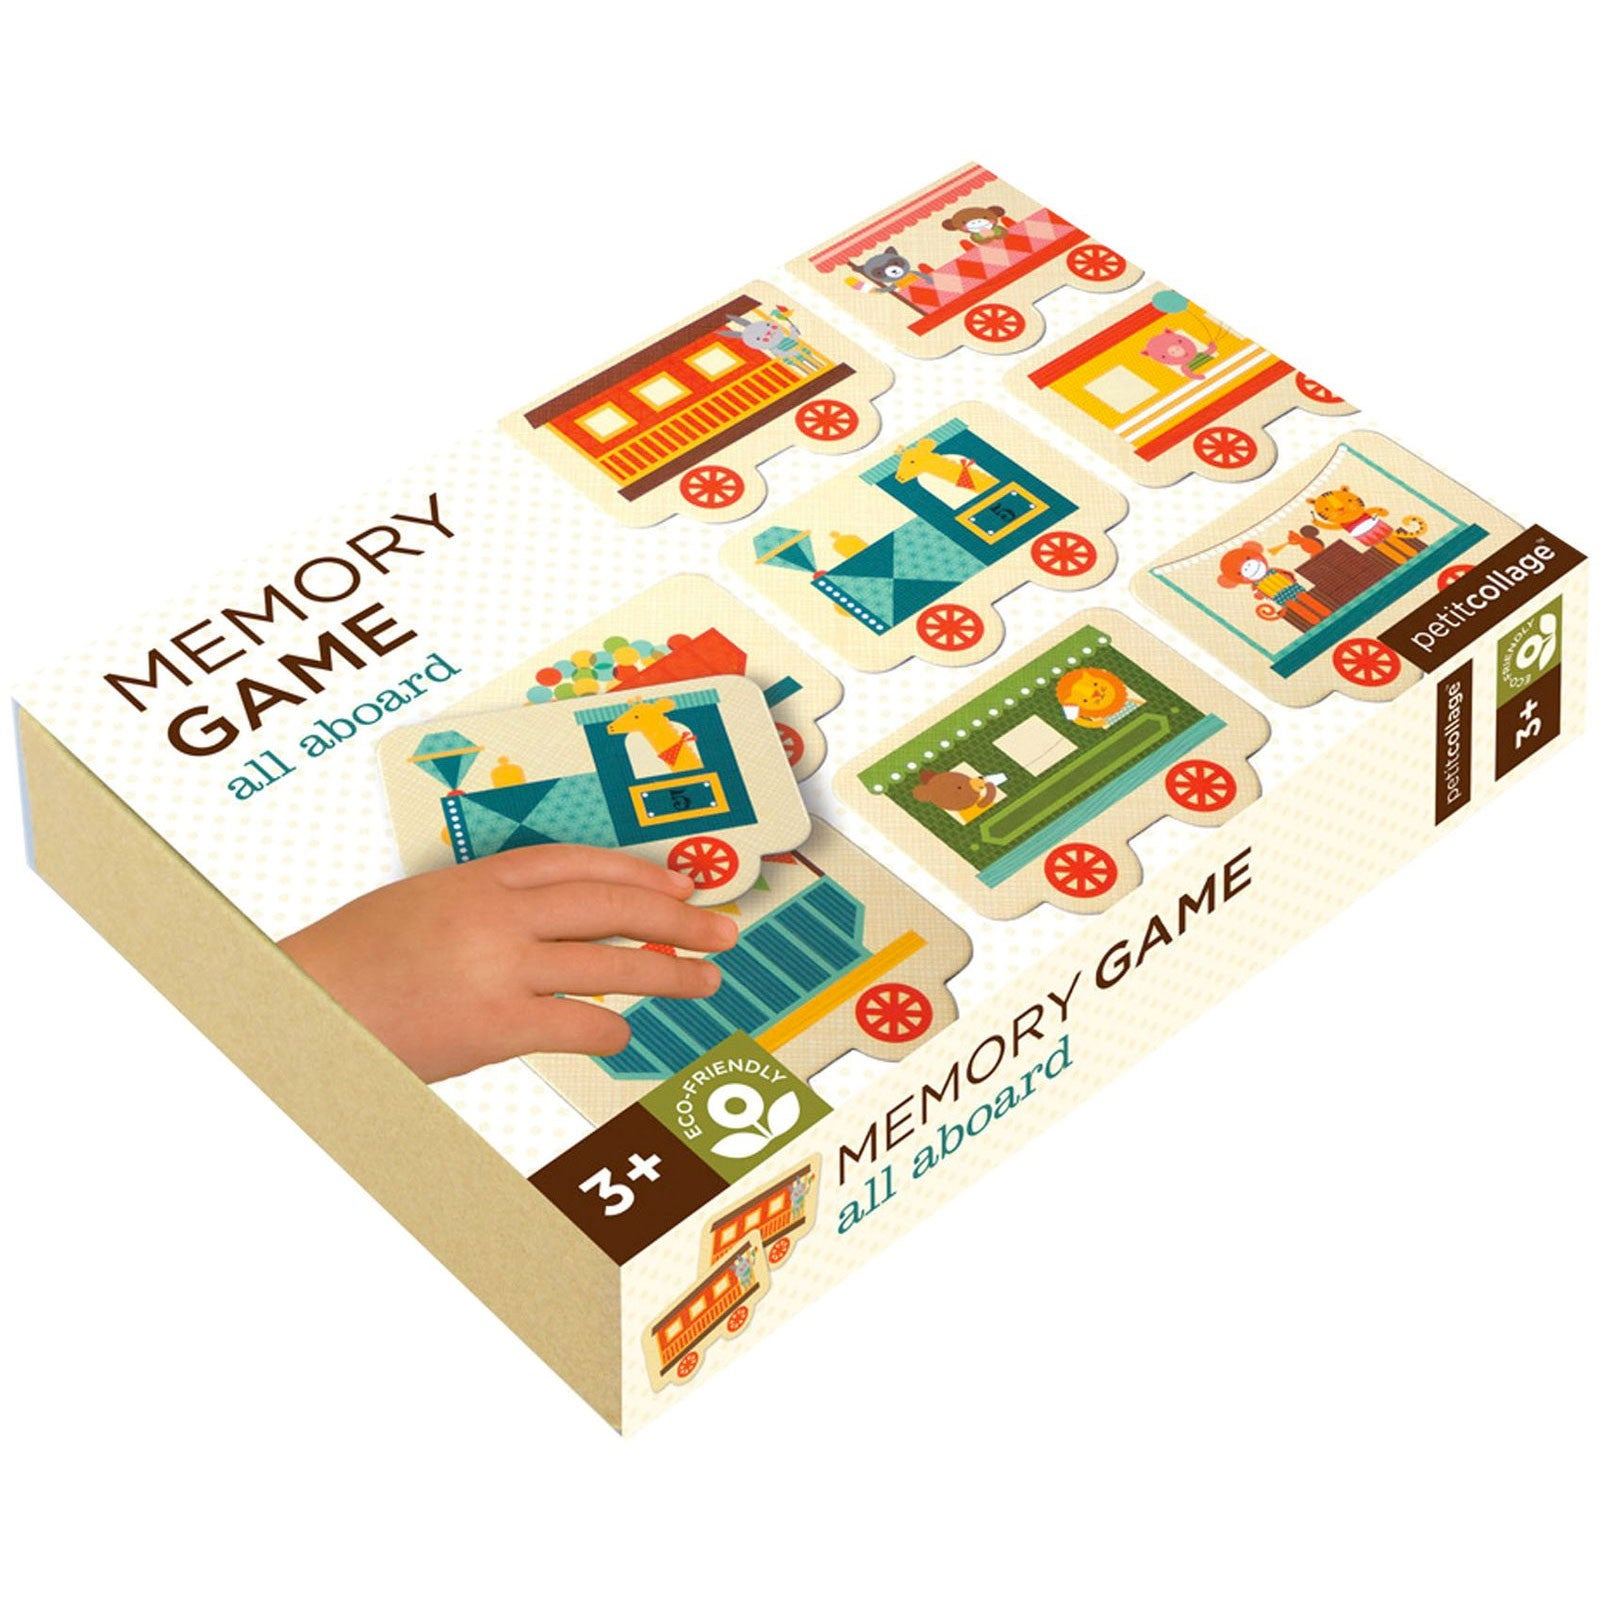 Petit Collage Memory Game Petit Collage Games All Aboard at Little Earth Nest Eco Shop